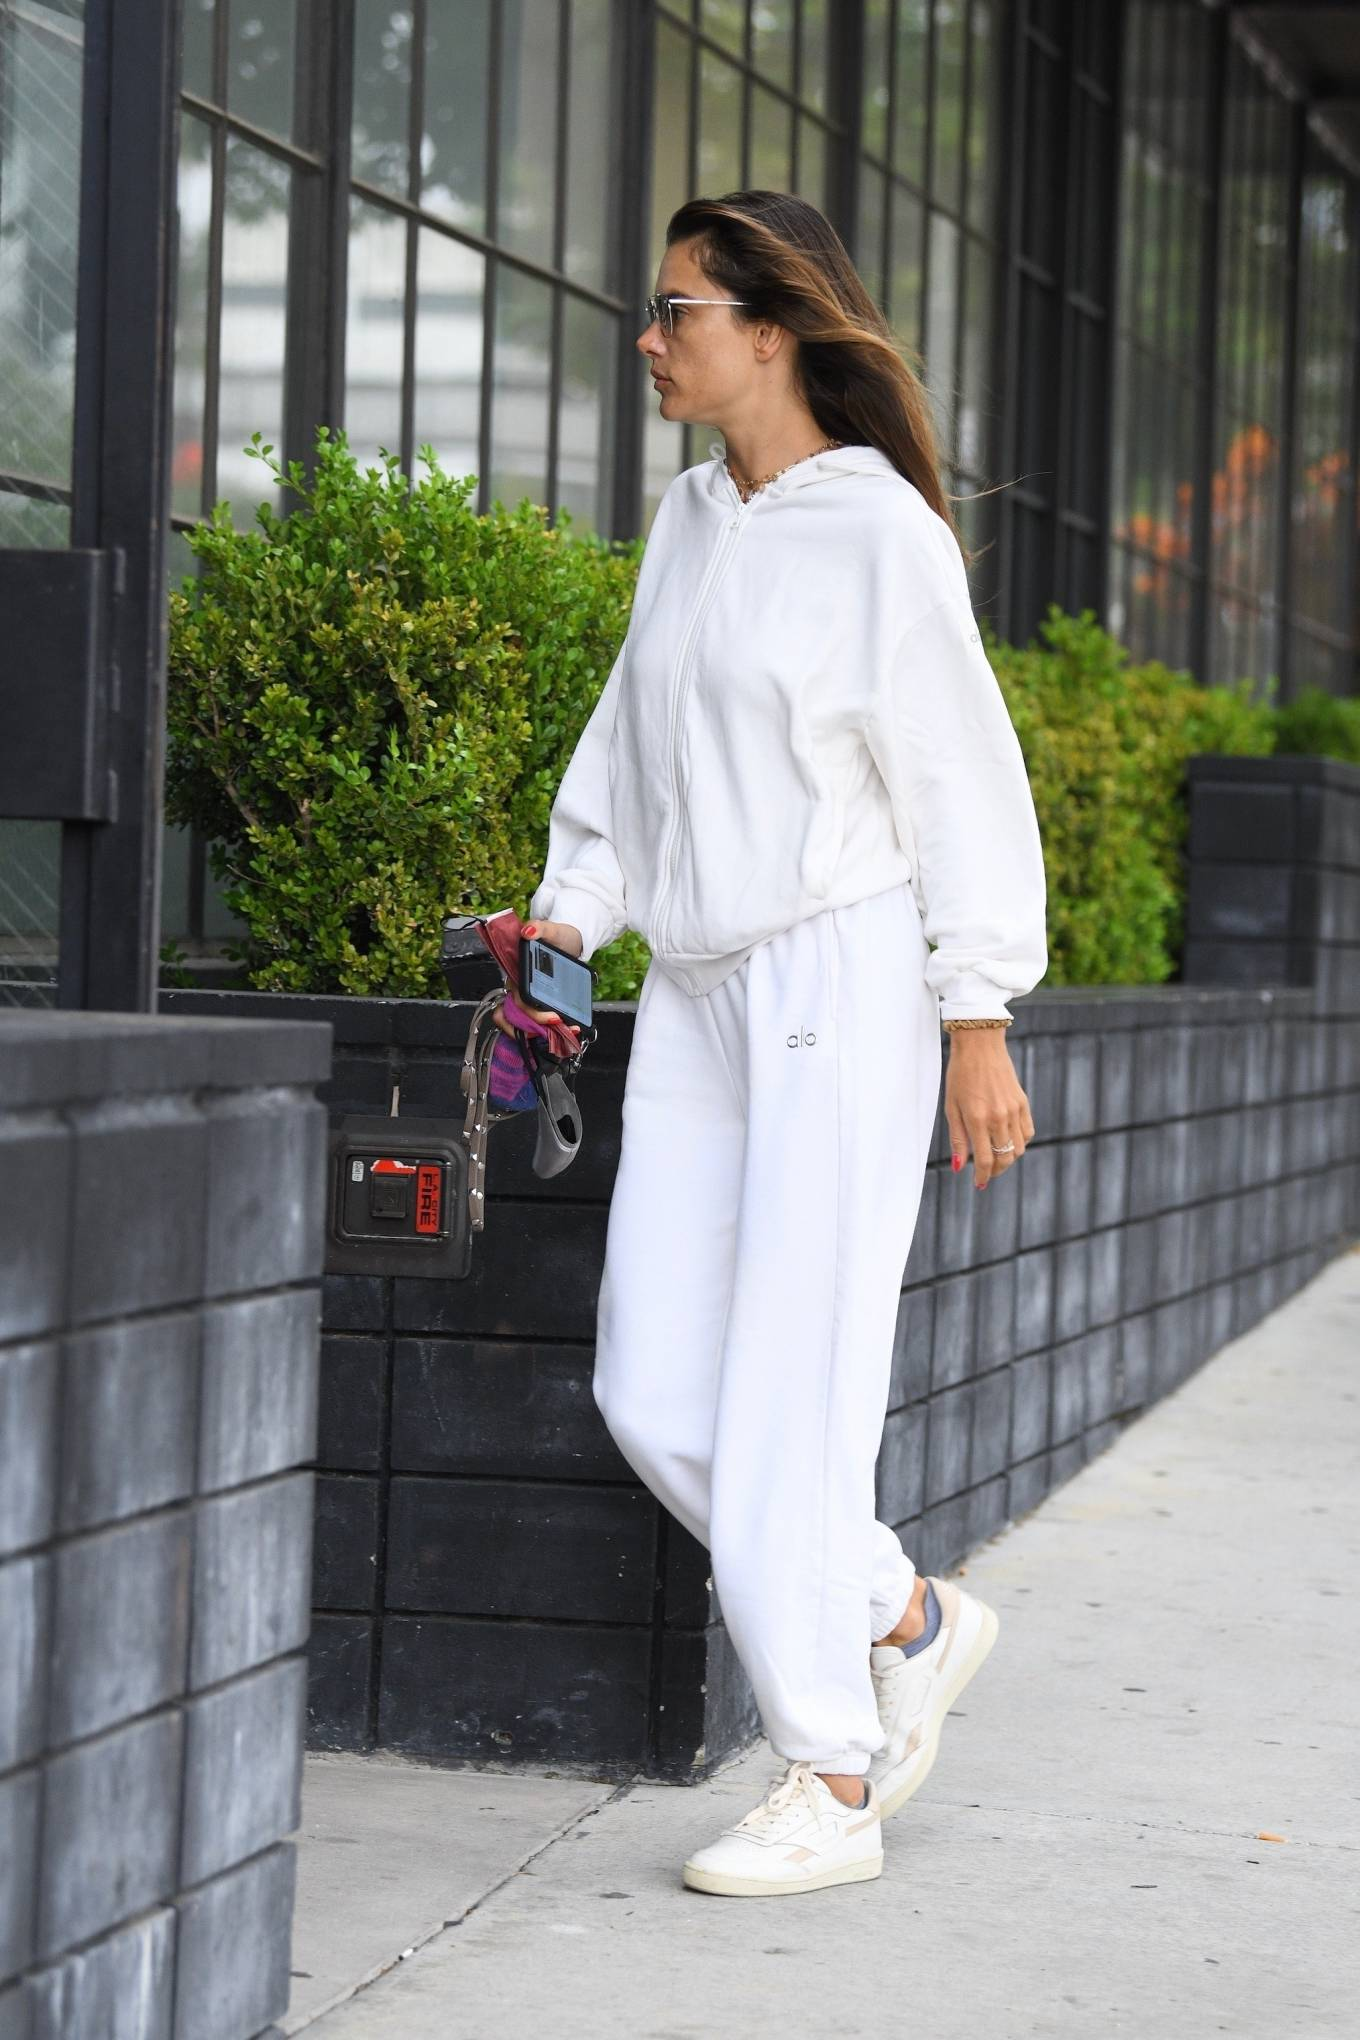 Alessandra Ambrosio wearing brand logo white lace-up sneakers with flat heel